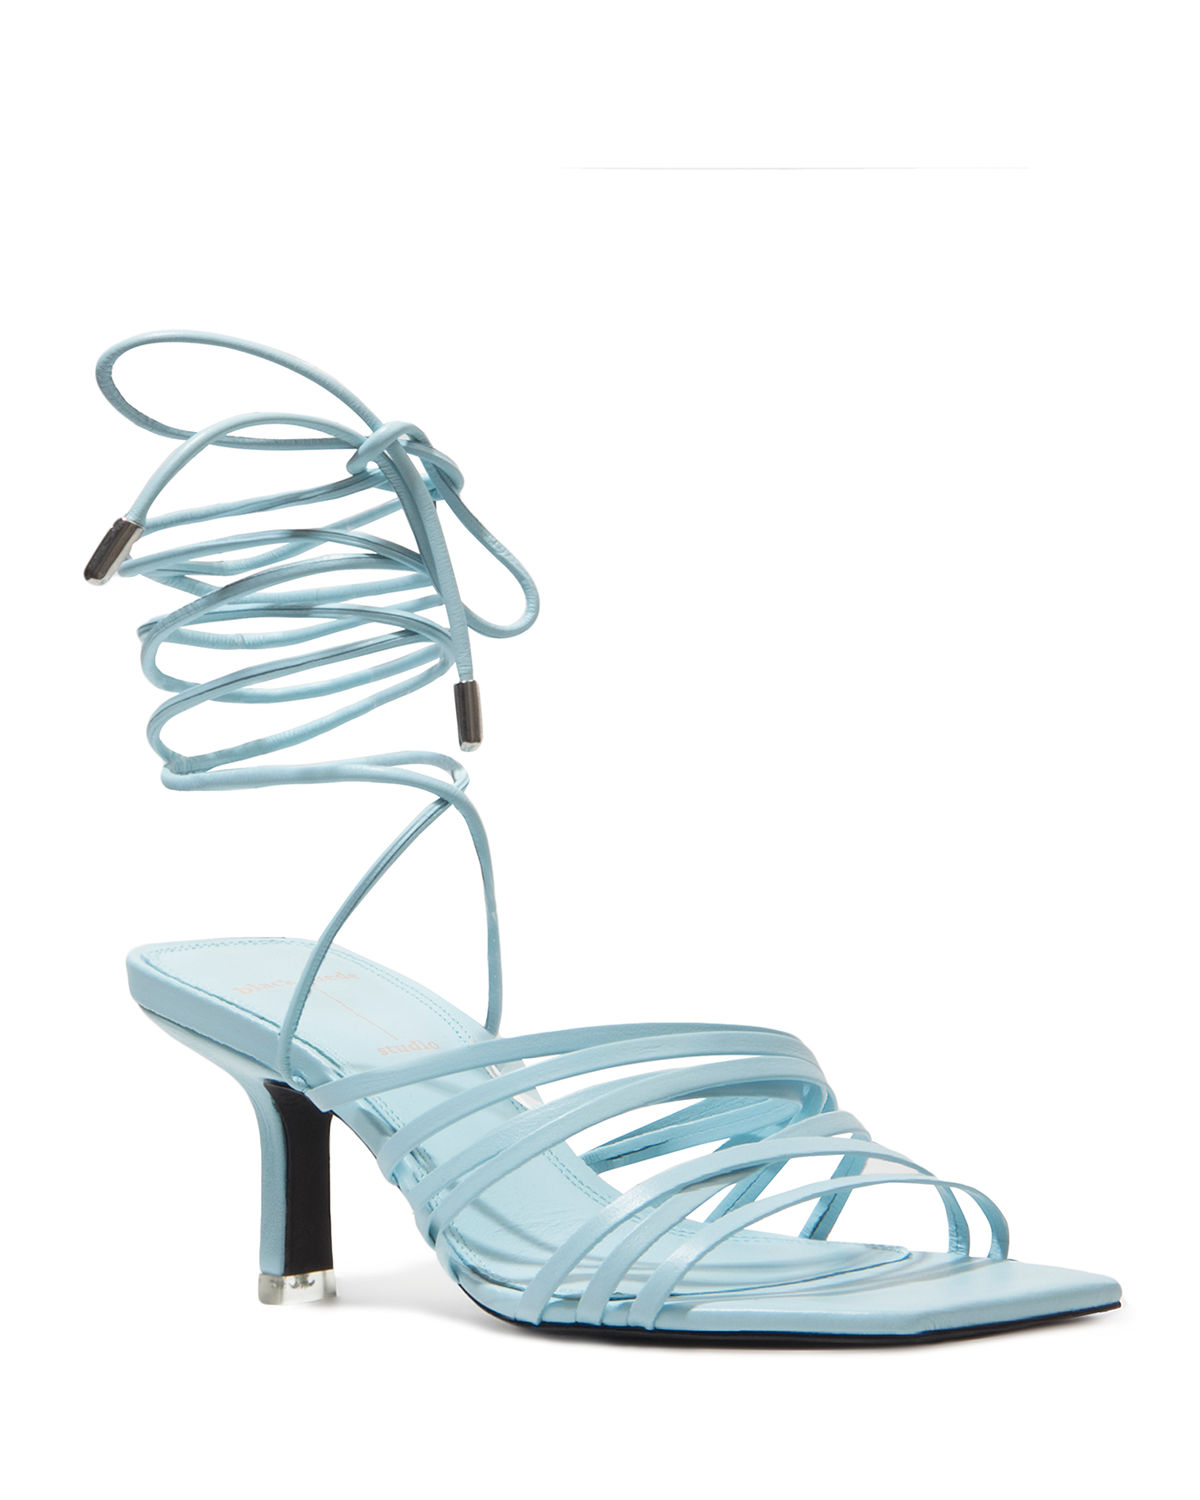 Franca Calfskin Strappy Ankle-Tie Sandals